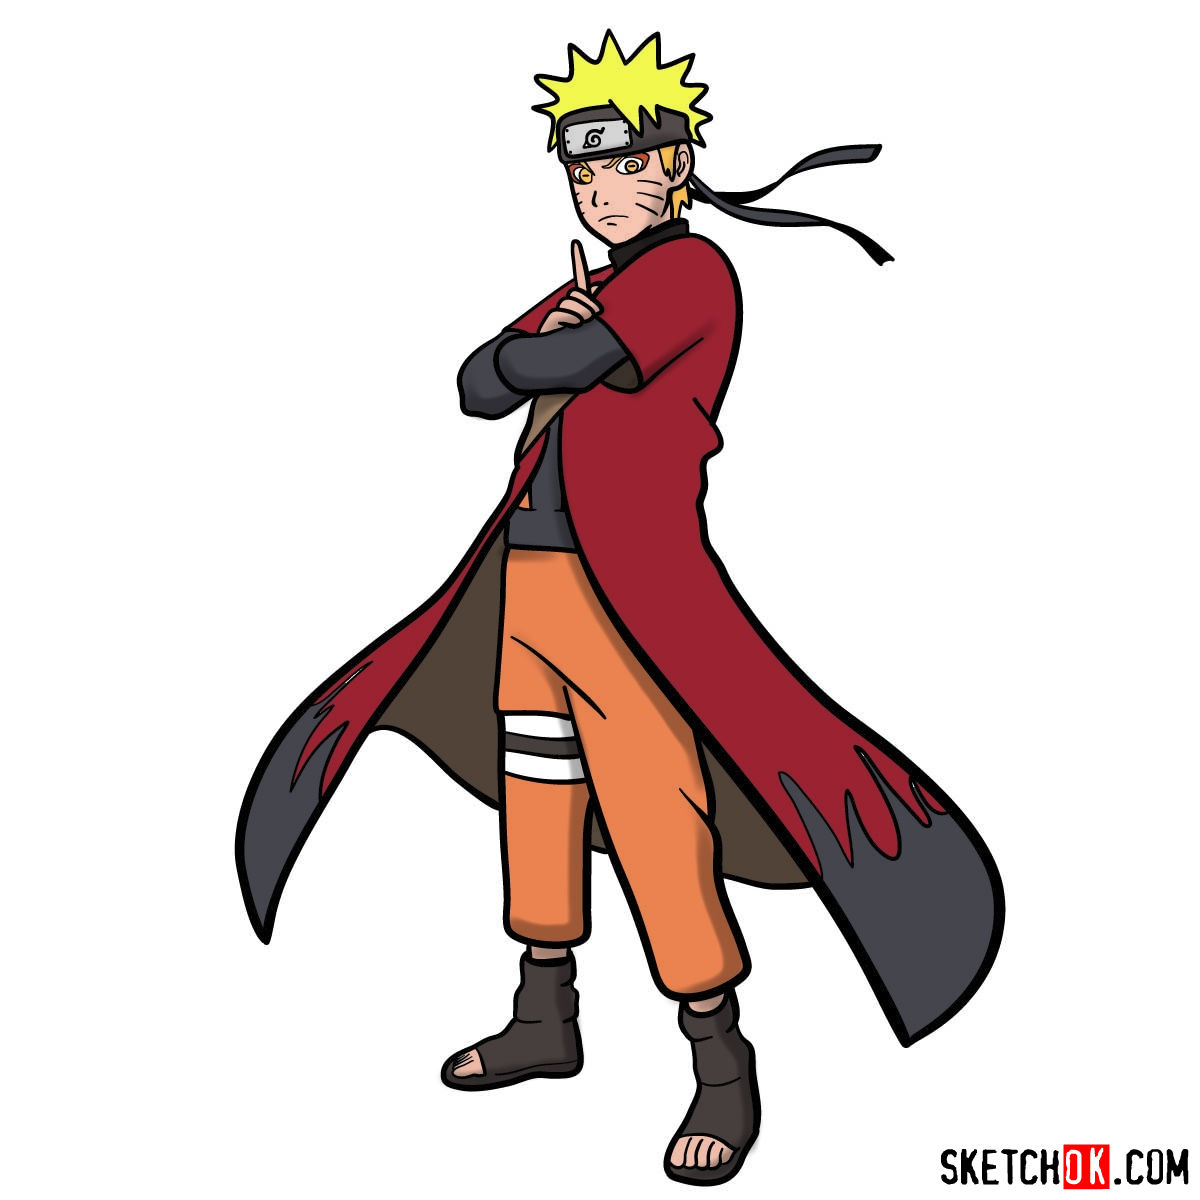 How to draw Naruto Uzumaki (Naruto anime)